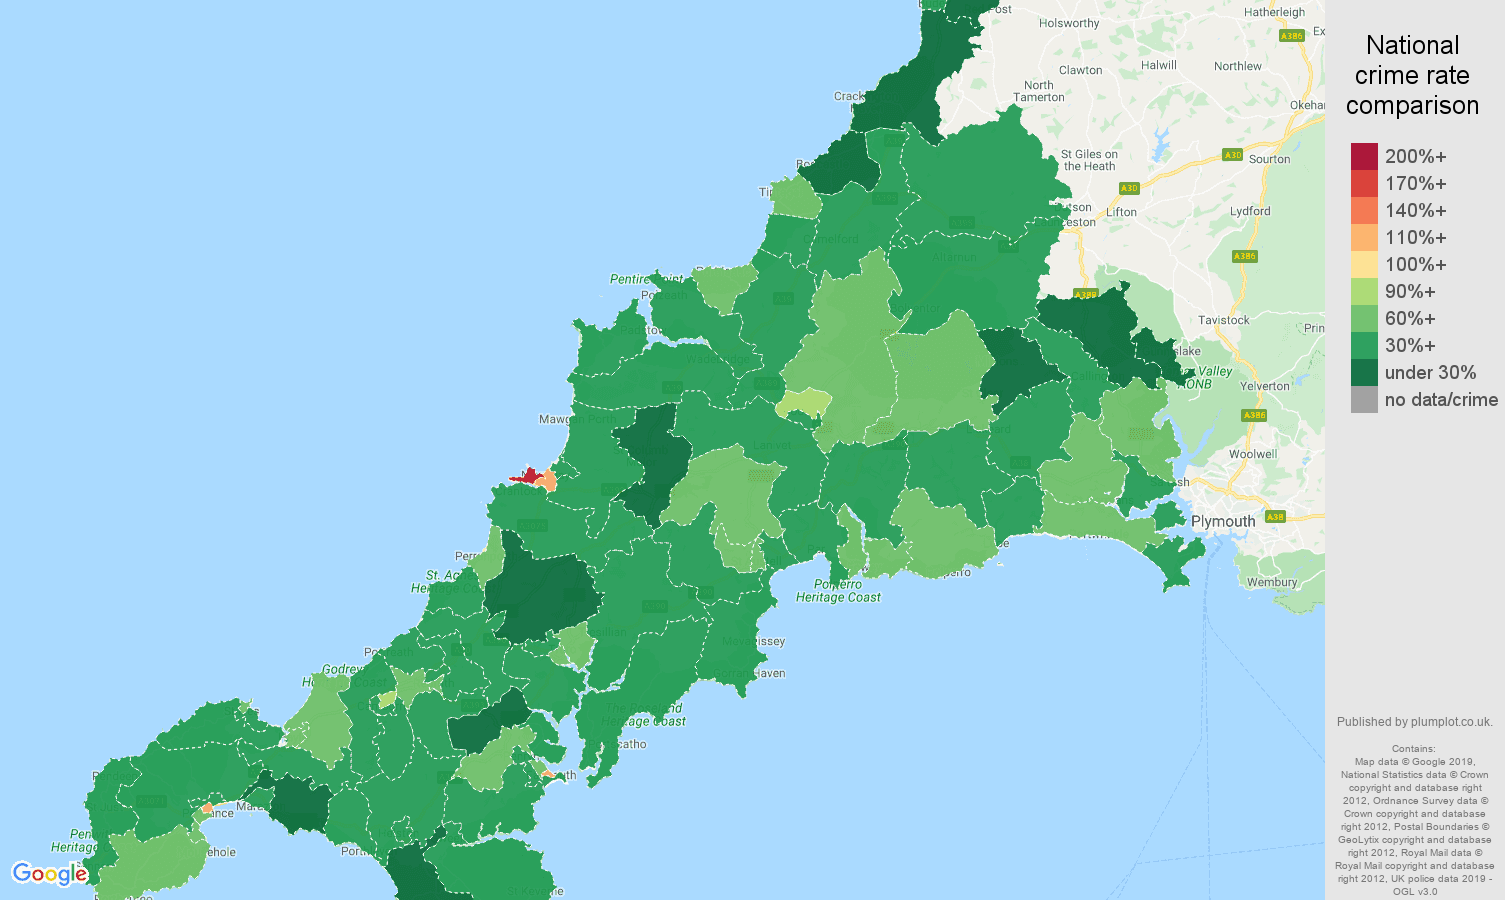 Cornwall other theft crime rate comparison map